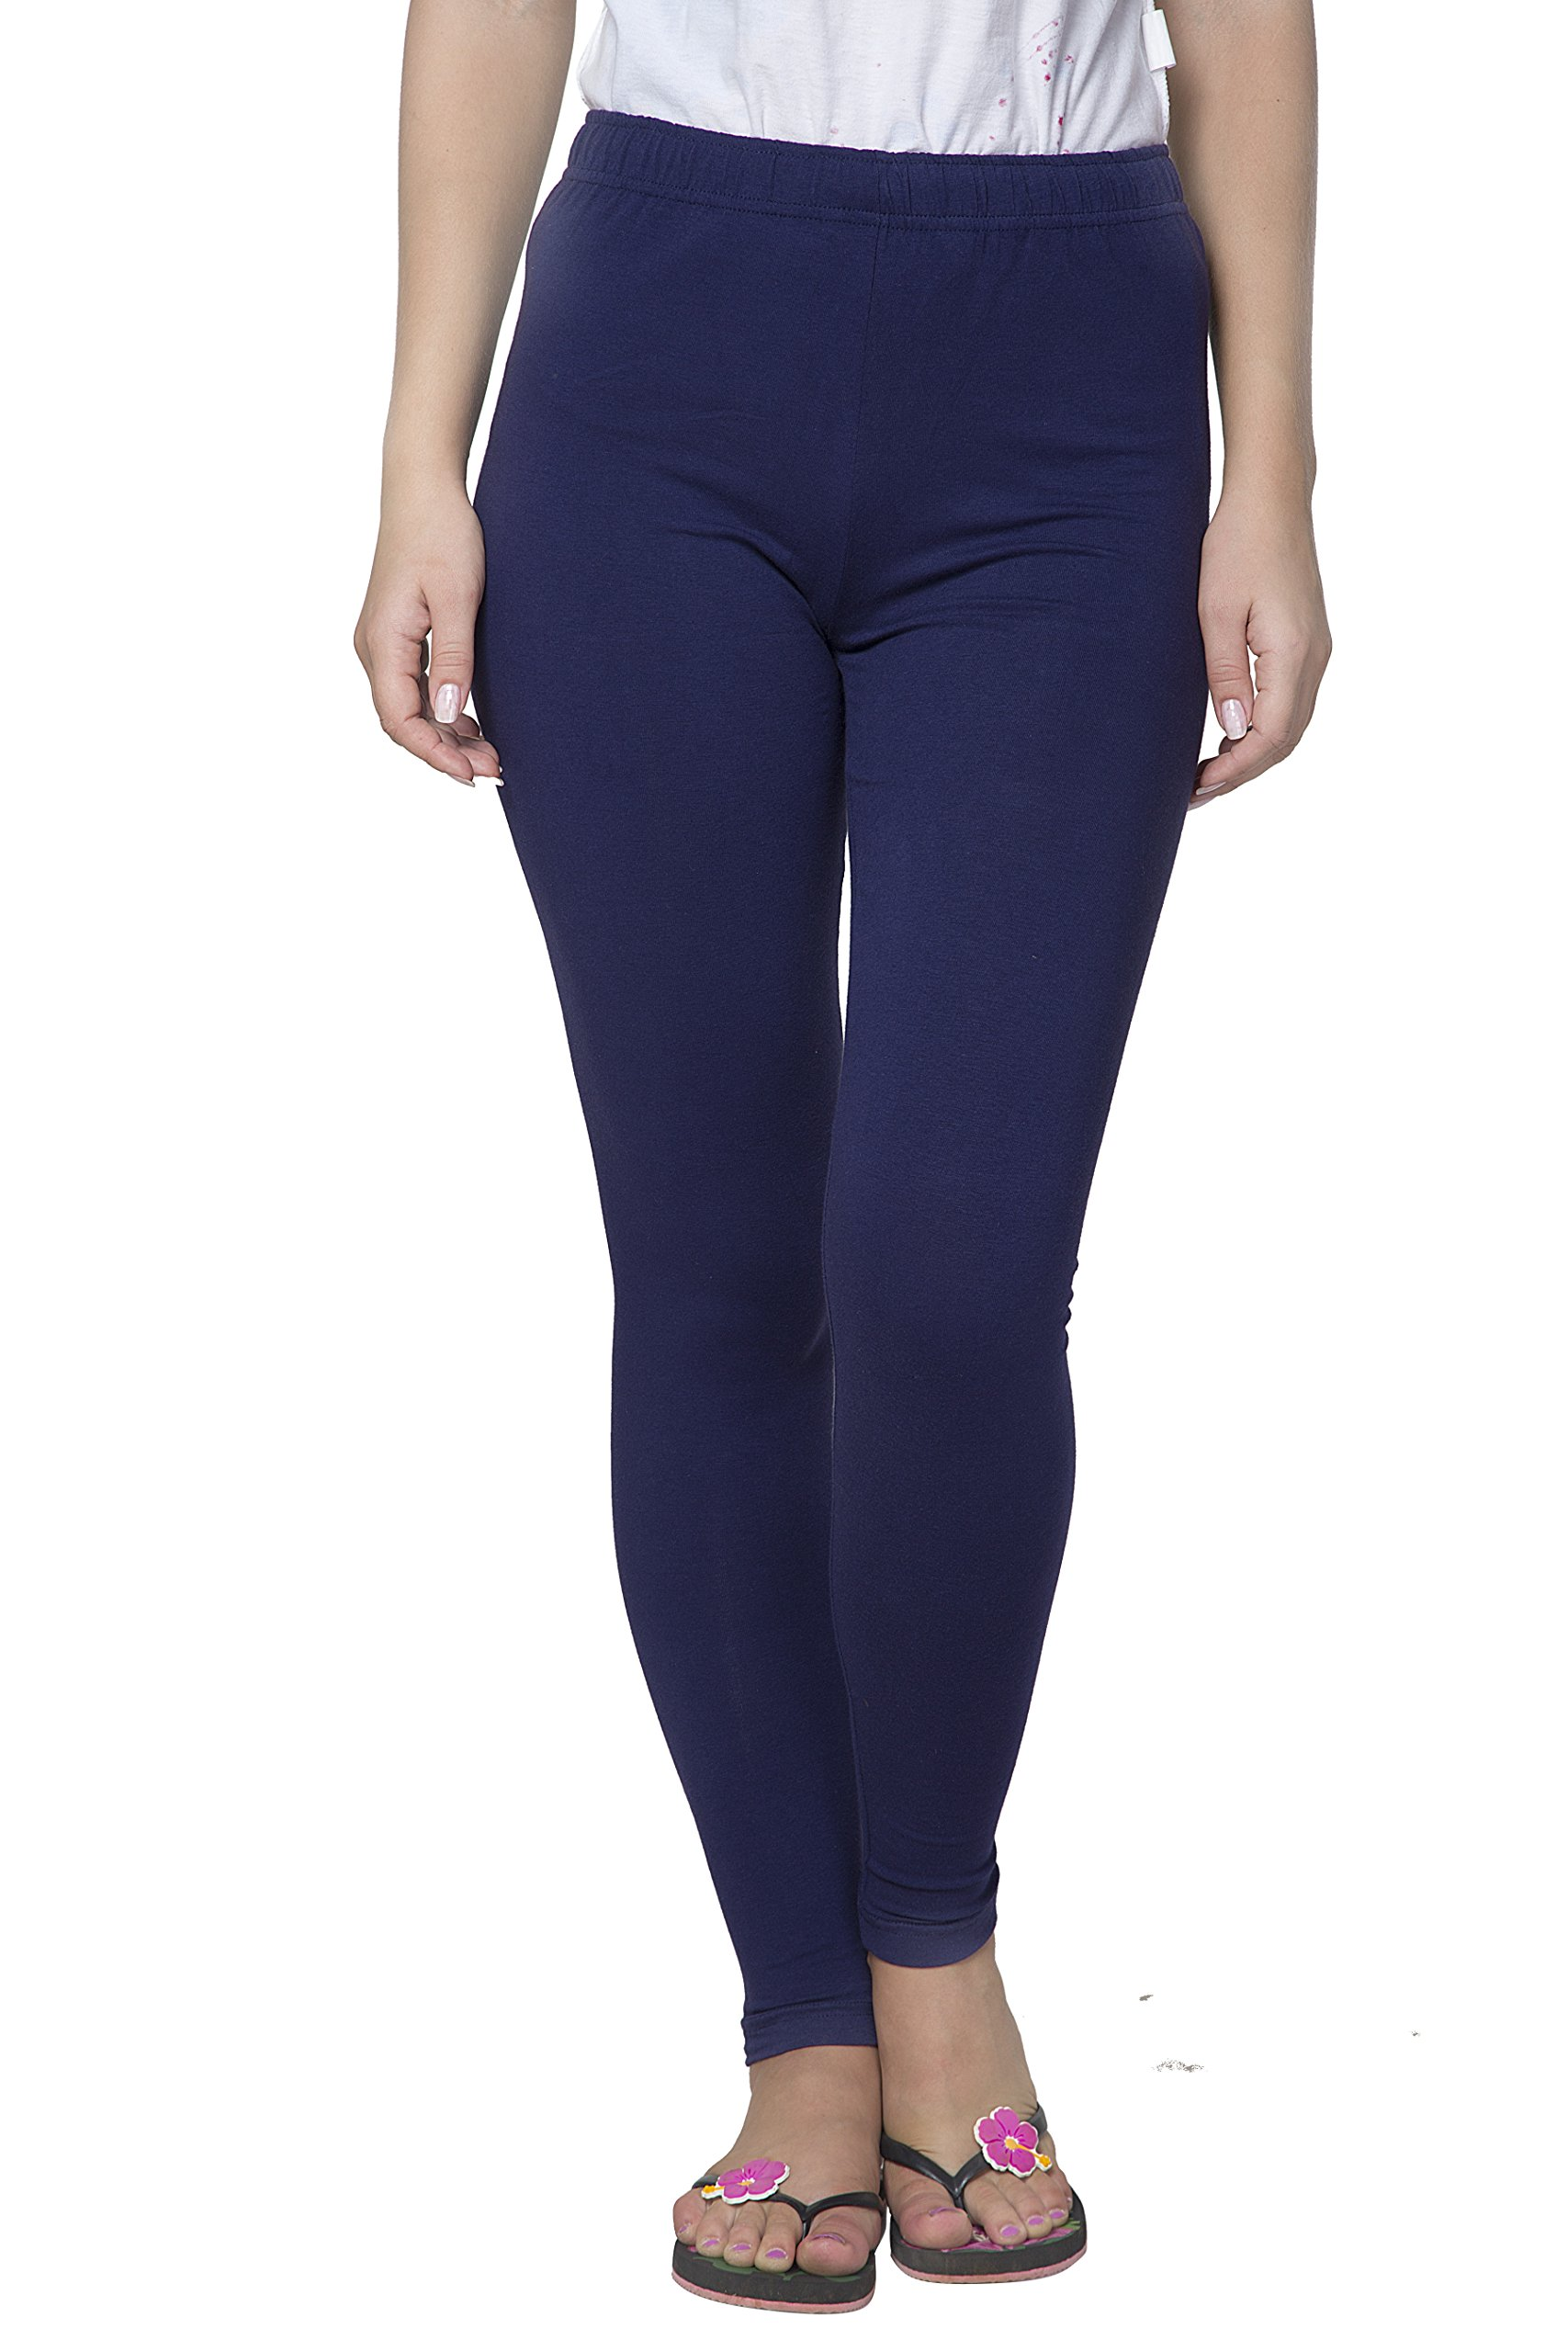 Clifton Women's Cotton Spandex Fine Jersey Leggings Pack Of 4-Assorted-2-XL by Clifton (Image #6)